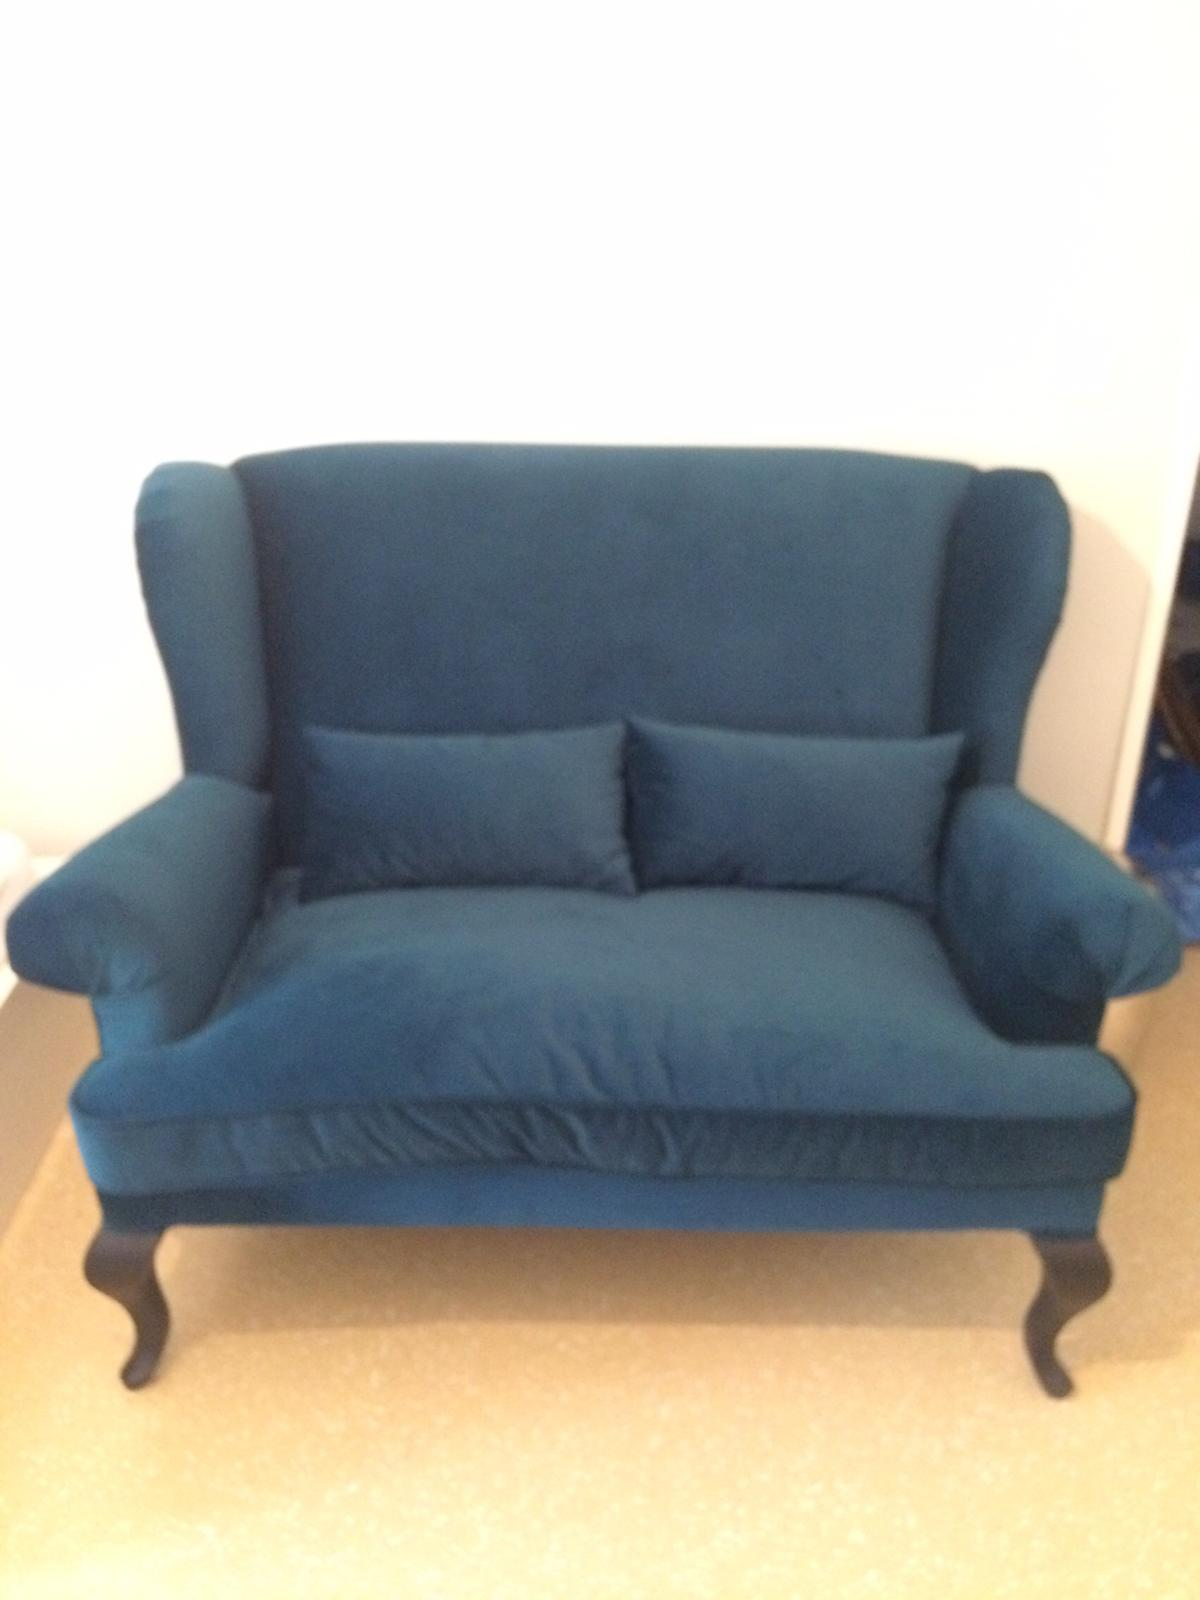 Xxl Sofa Petrol Samt In 80634 Munchen For 500 00 For Sale Shpock